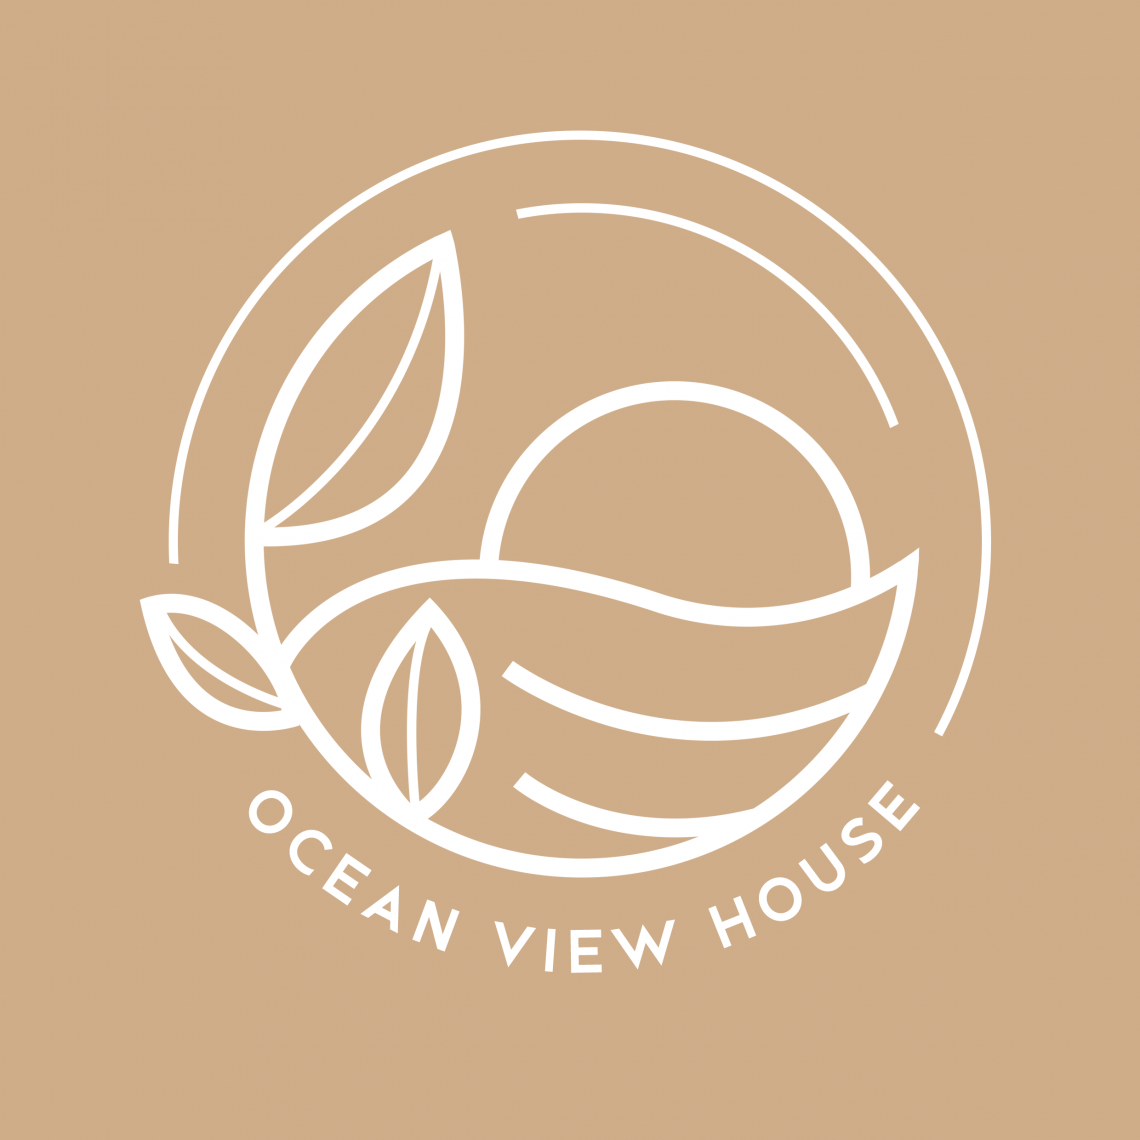 Hotel Names - Ocean View House